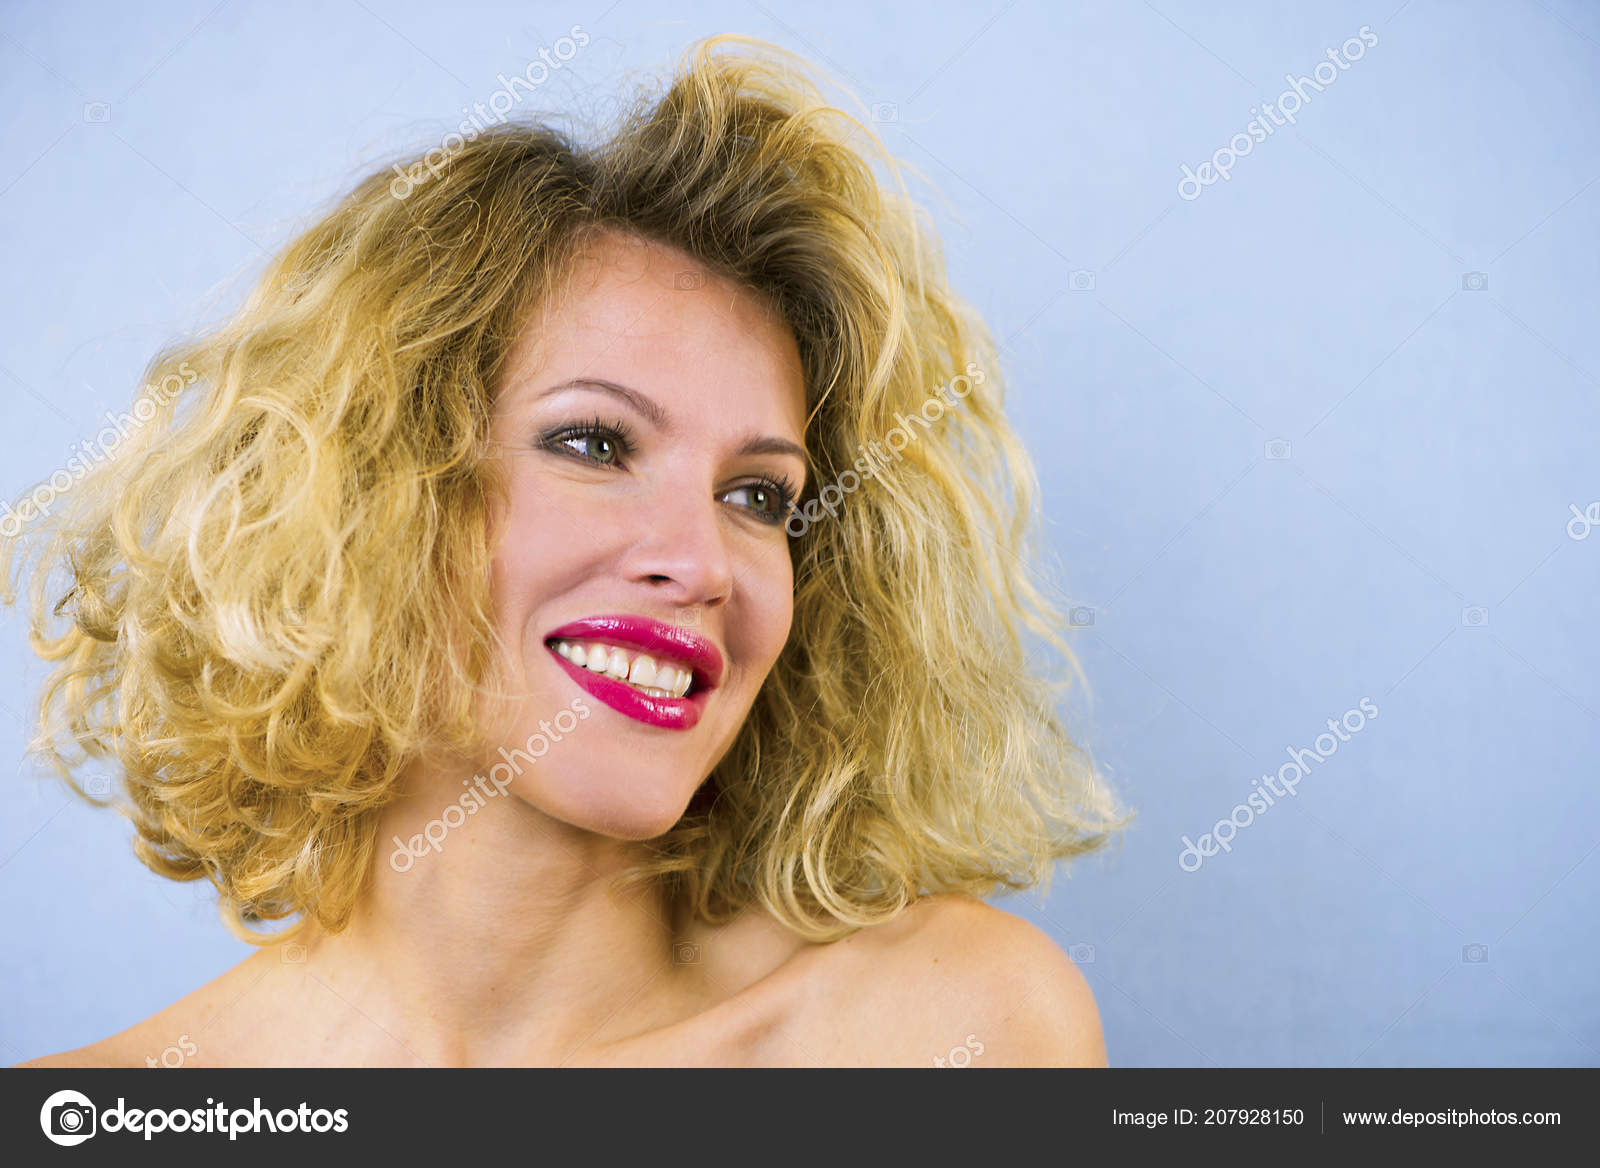 Face Pretty Girl Curly Hair Red Lips Closeup Stock Photo